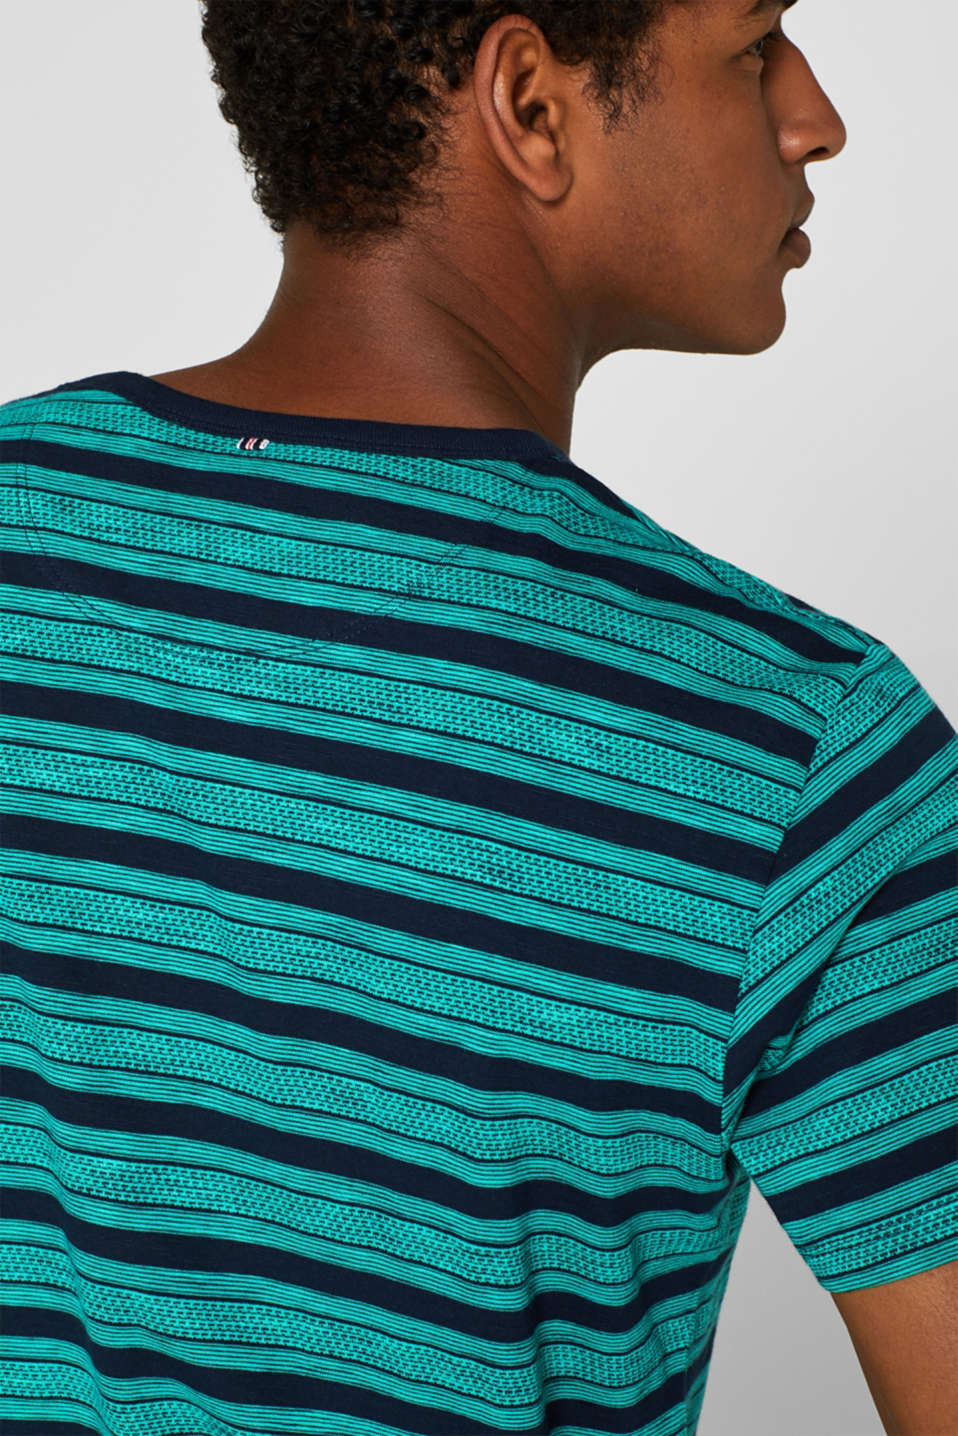 Jersey T-shirt with tribal stripes, 100% cotton, NAVY, detail image number 1